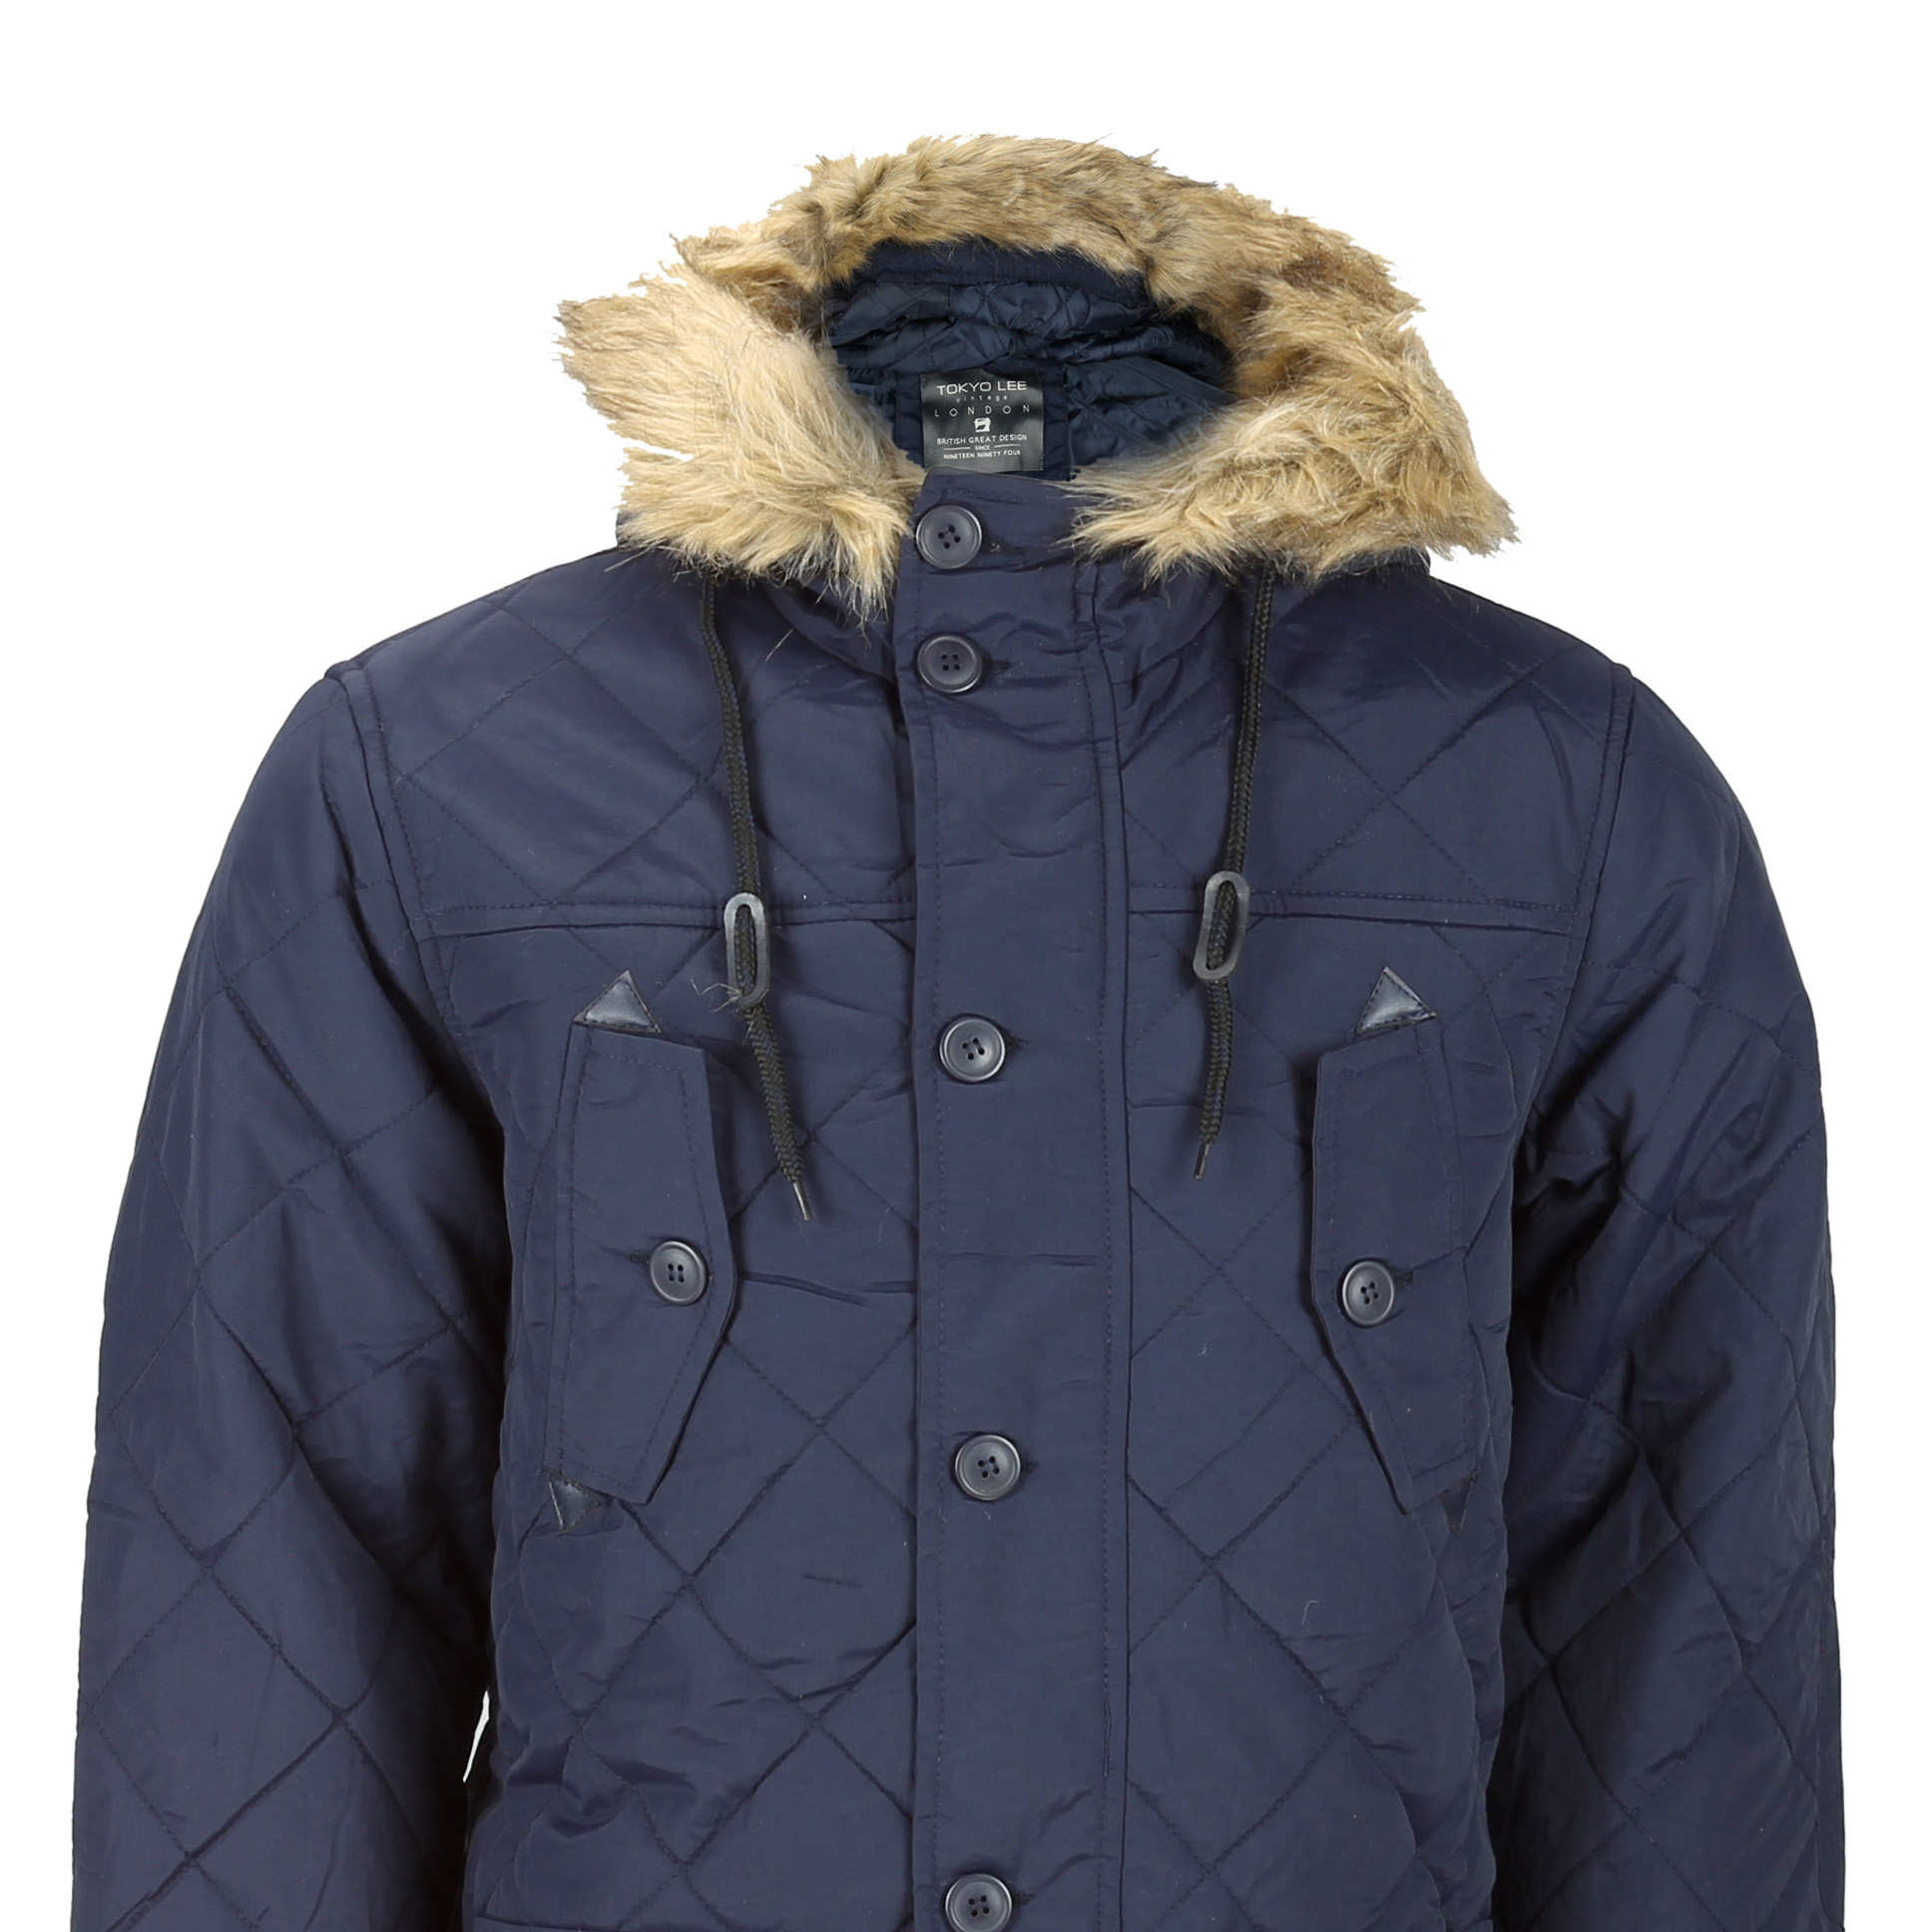 9caa1f711 Details about New Mens Blue Quilted Parka Jacket Fur Trim Hood Padded Warm  Winter Puffer Coat